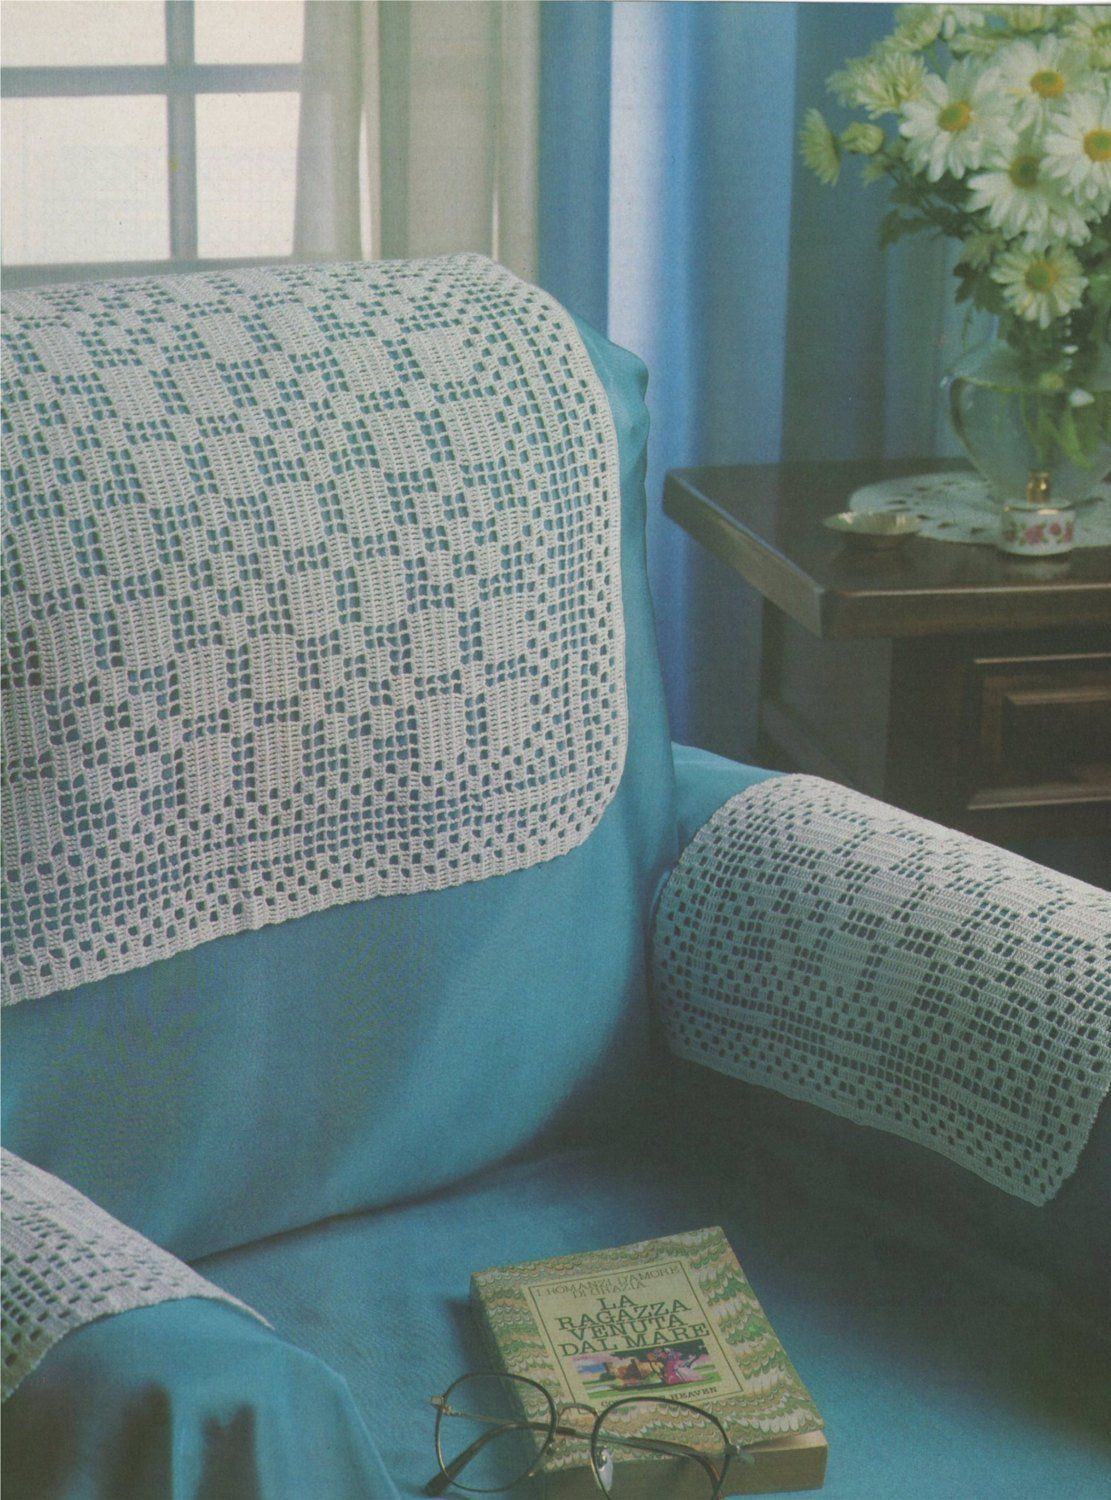 Antimacassars Crochet Pattern Pdf Chair And Sofa Furniture Etsy Chair Back Covers Sofas For Small Spaces Sofa Arm Covers